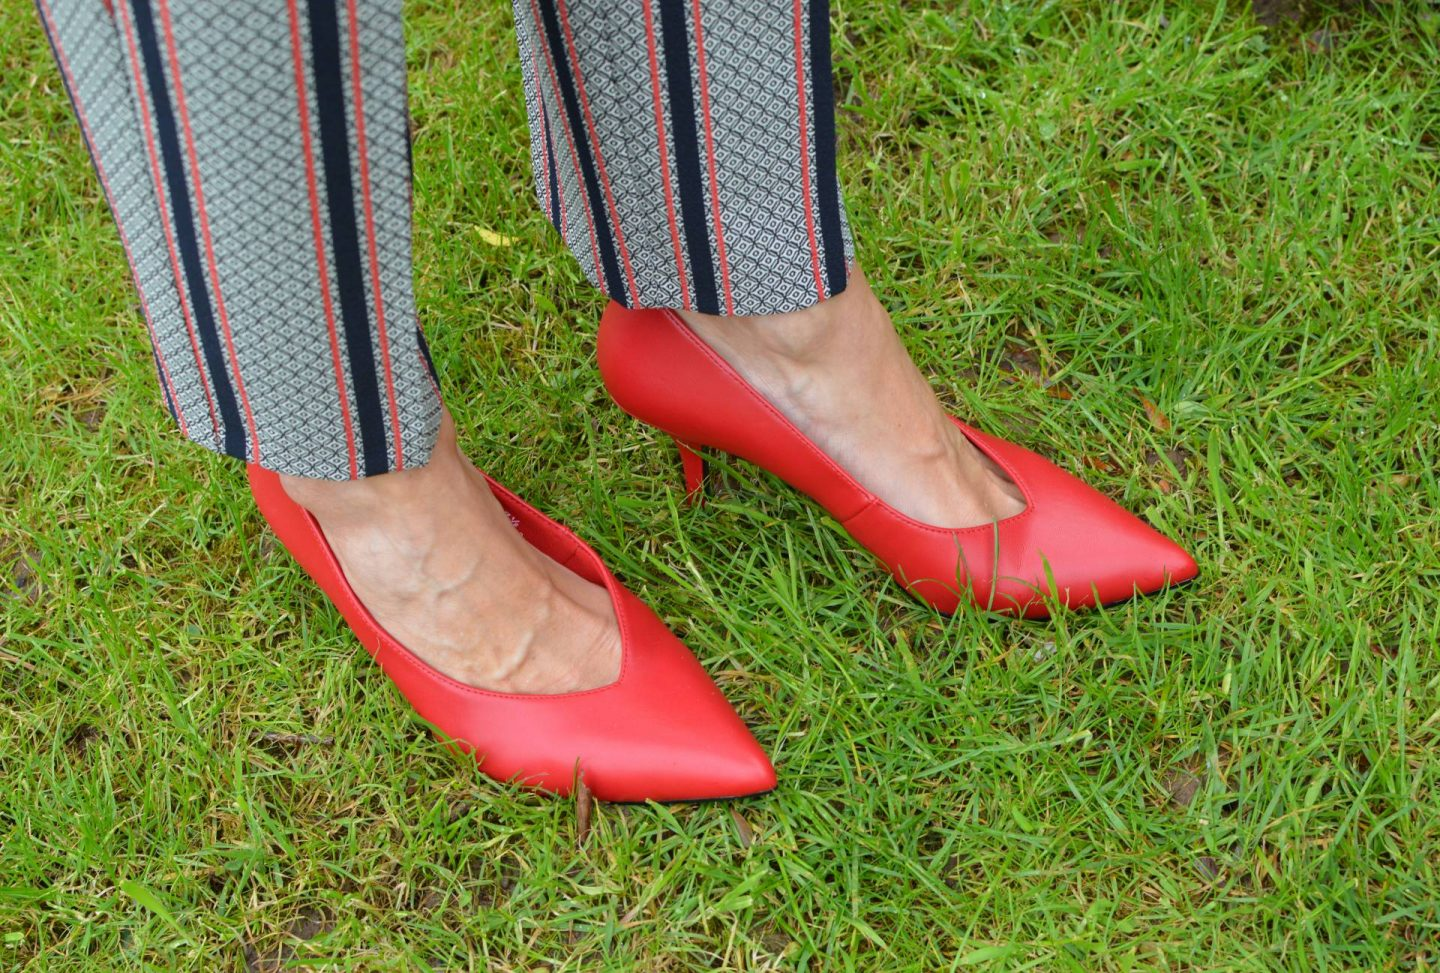 River Island trouser suit, M&S faux leather red court shoes